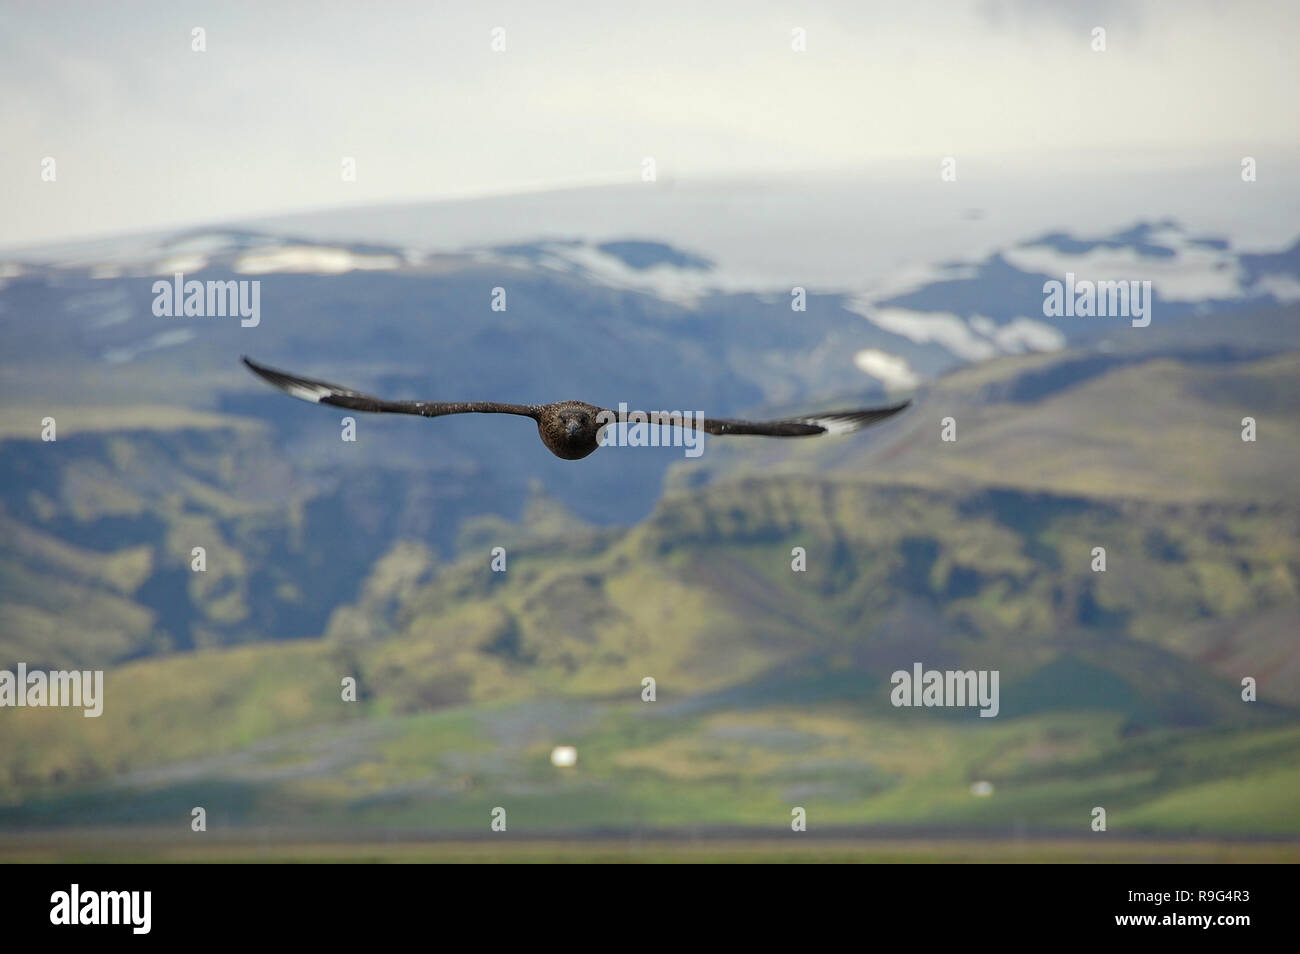 Breeding Great Skua (Stercorarius skua). - Stock Image